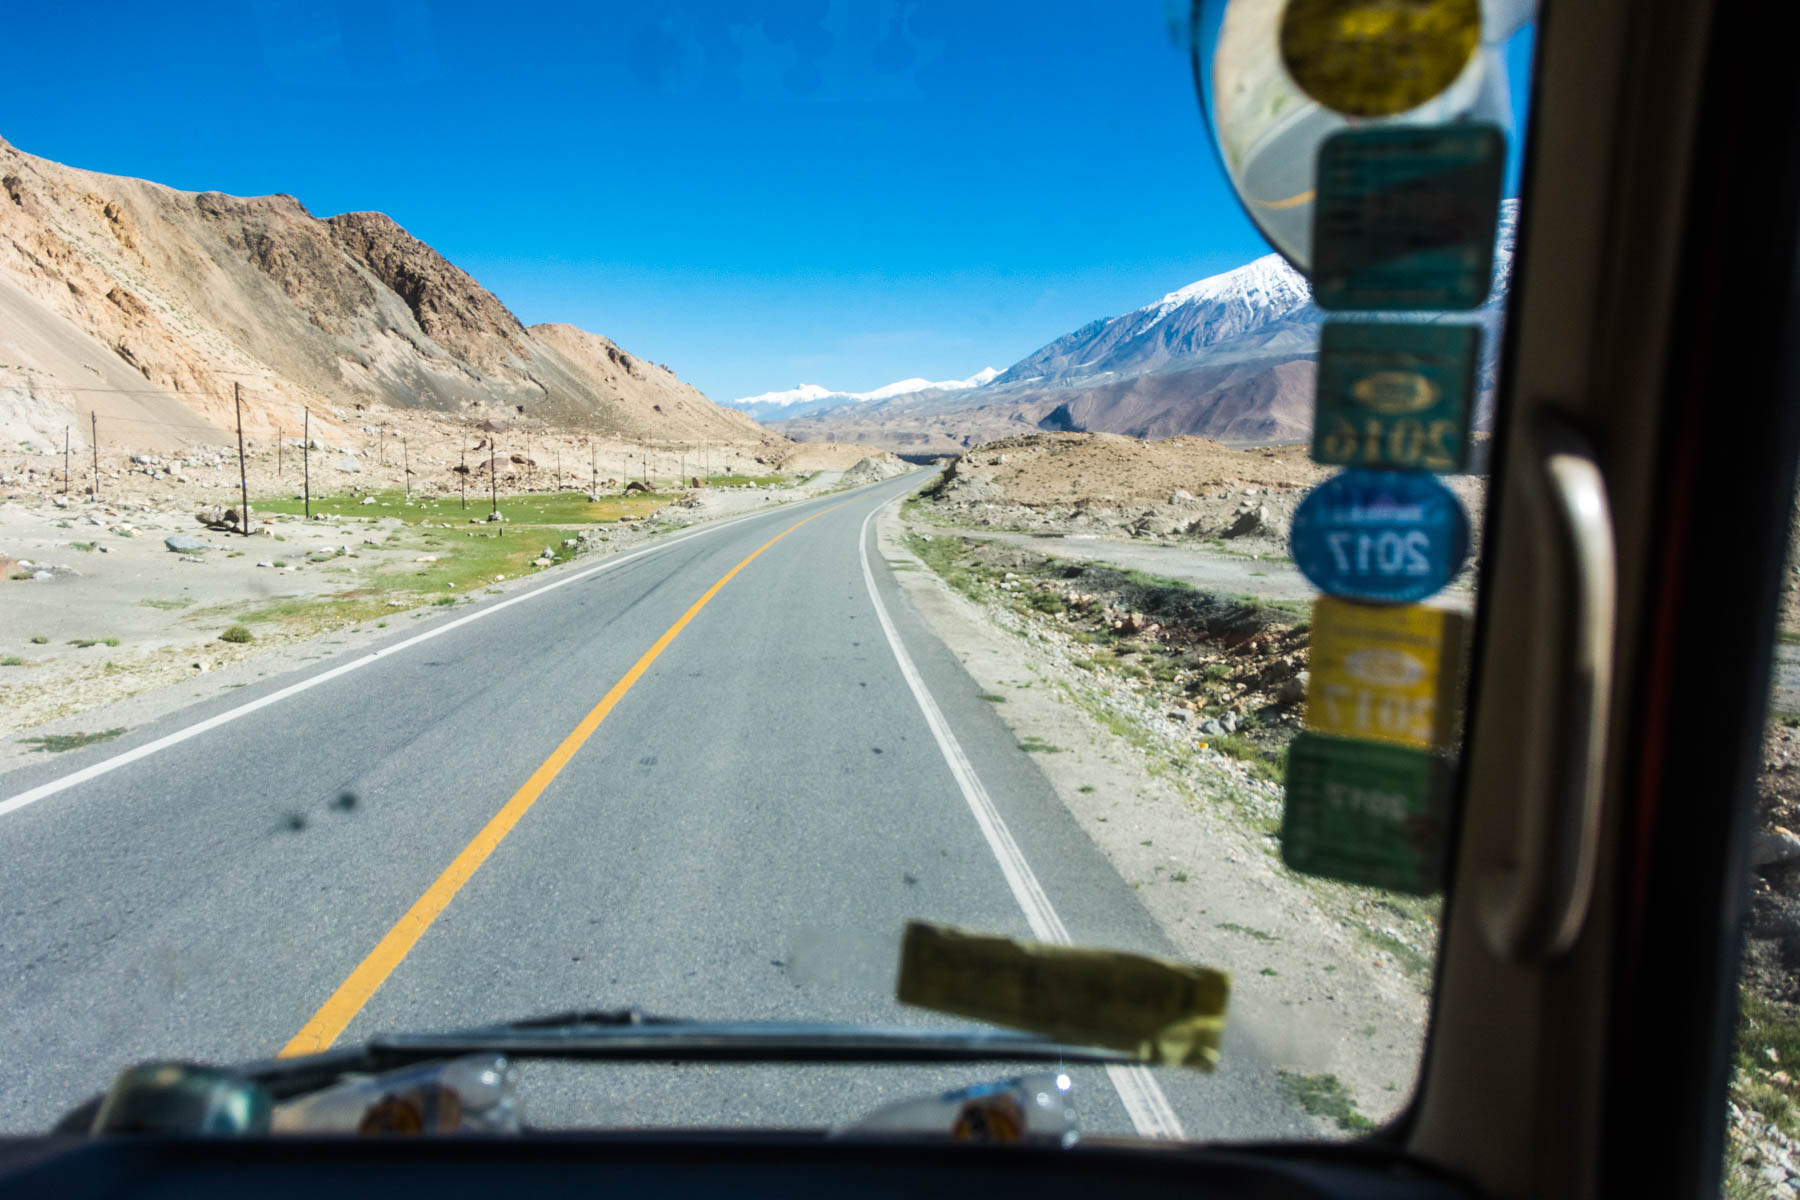 Hitchhiking from Karakul lake, China - Lost With Purpose